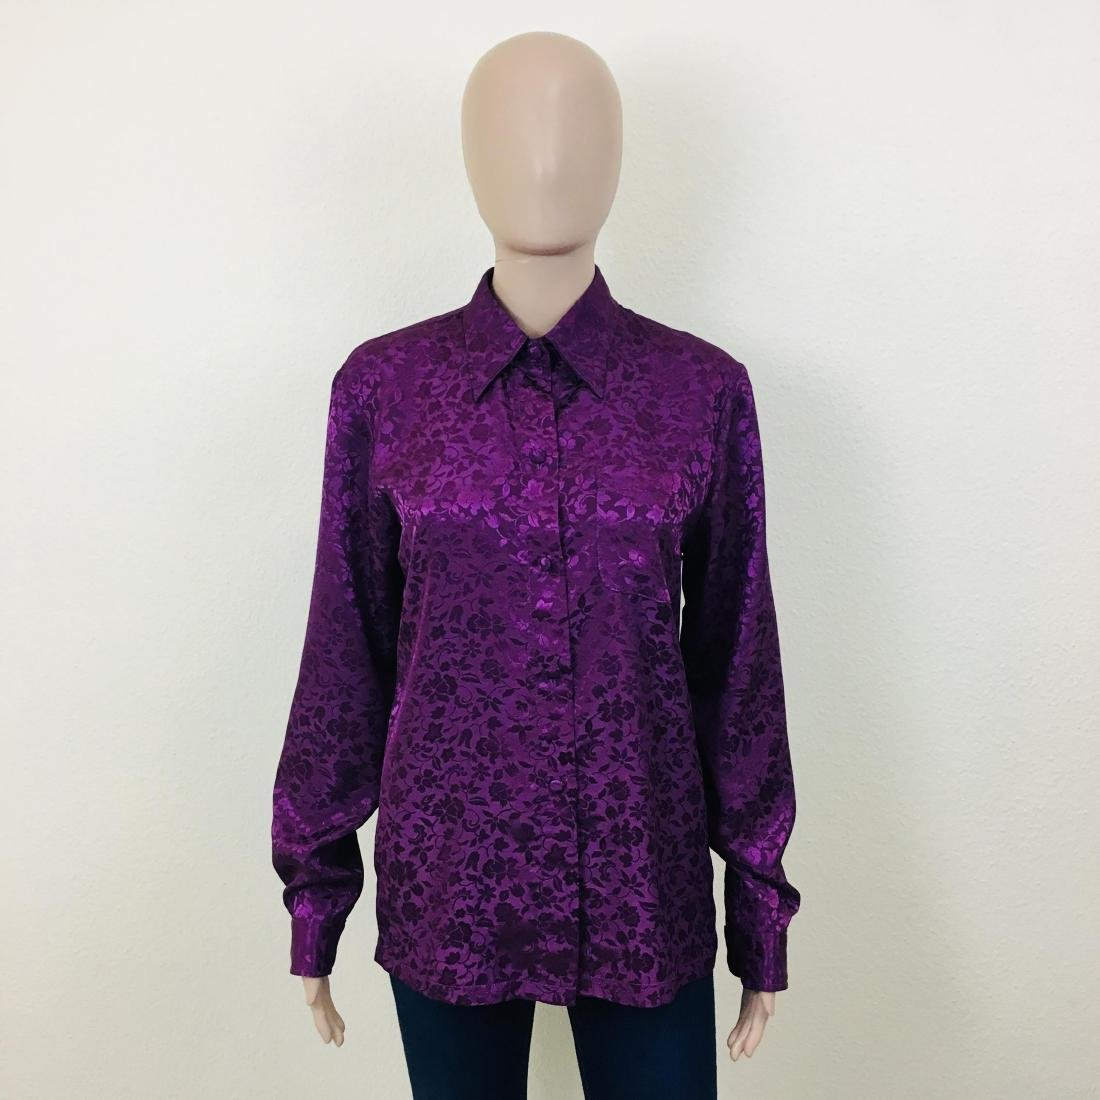 Women's Custom Tailored Shirt Top Blouse